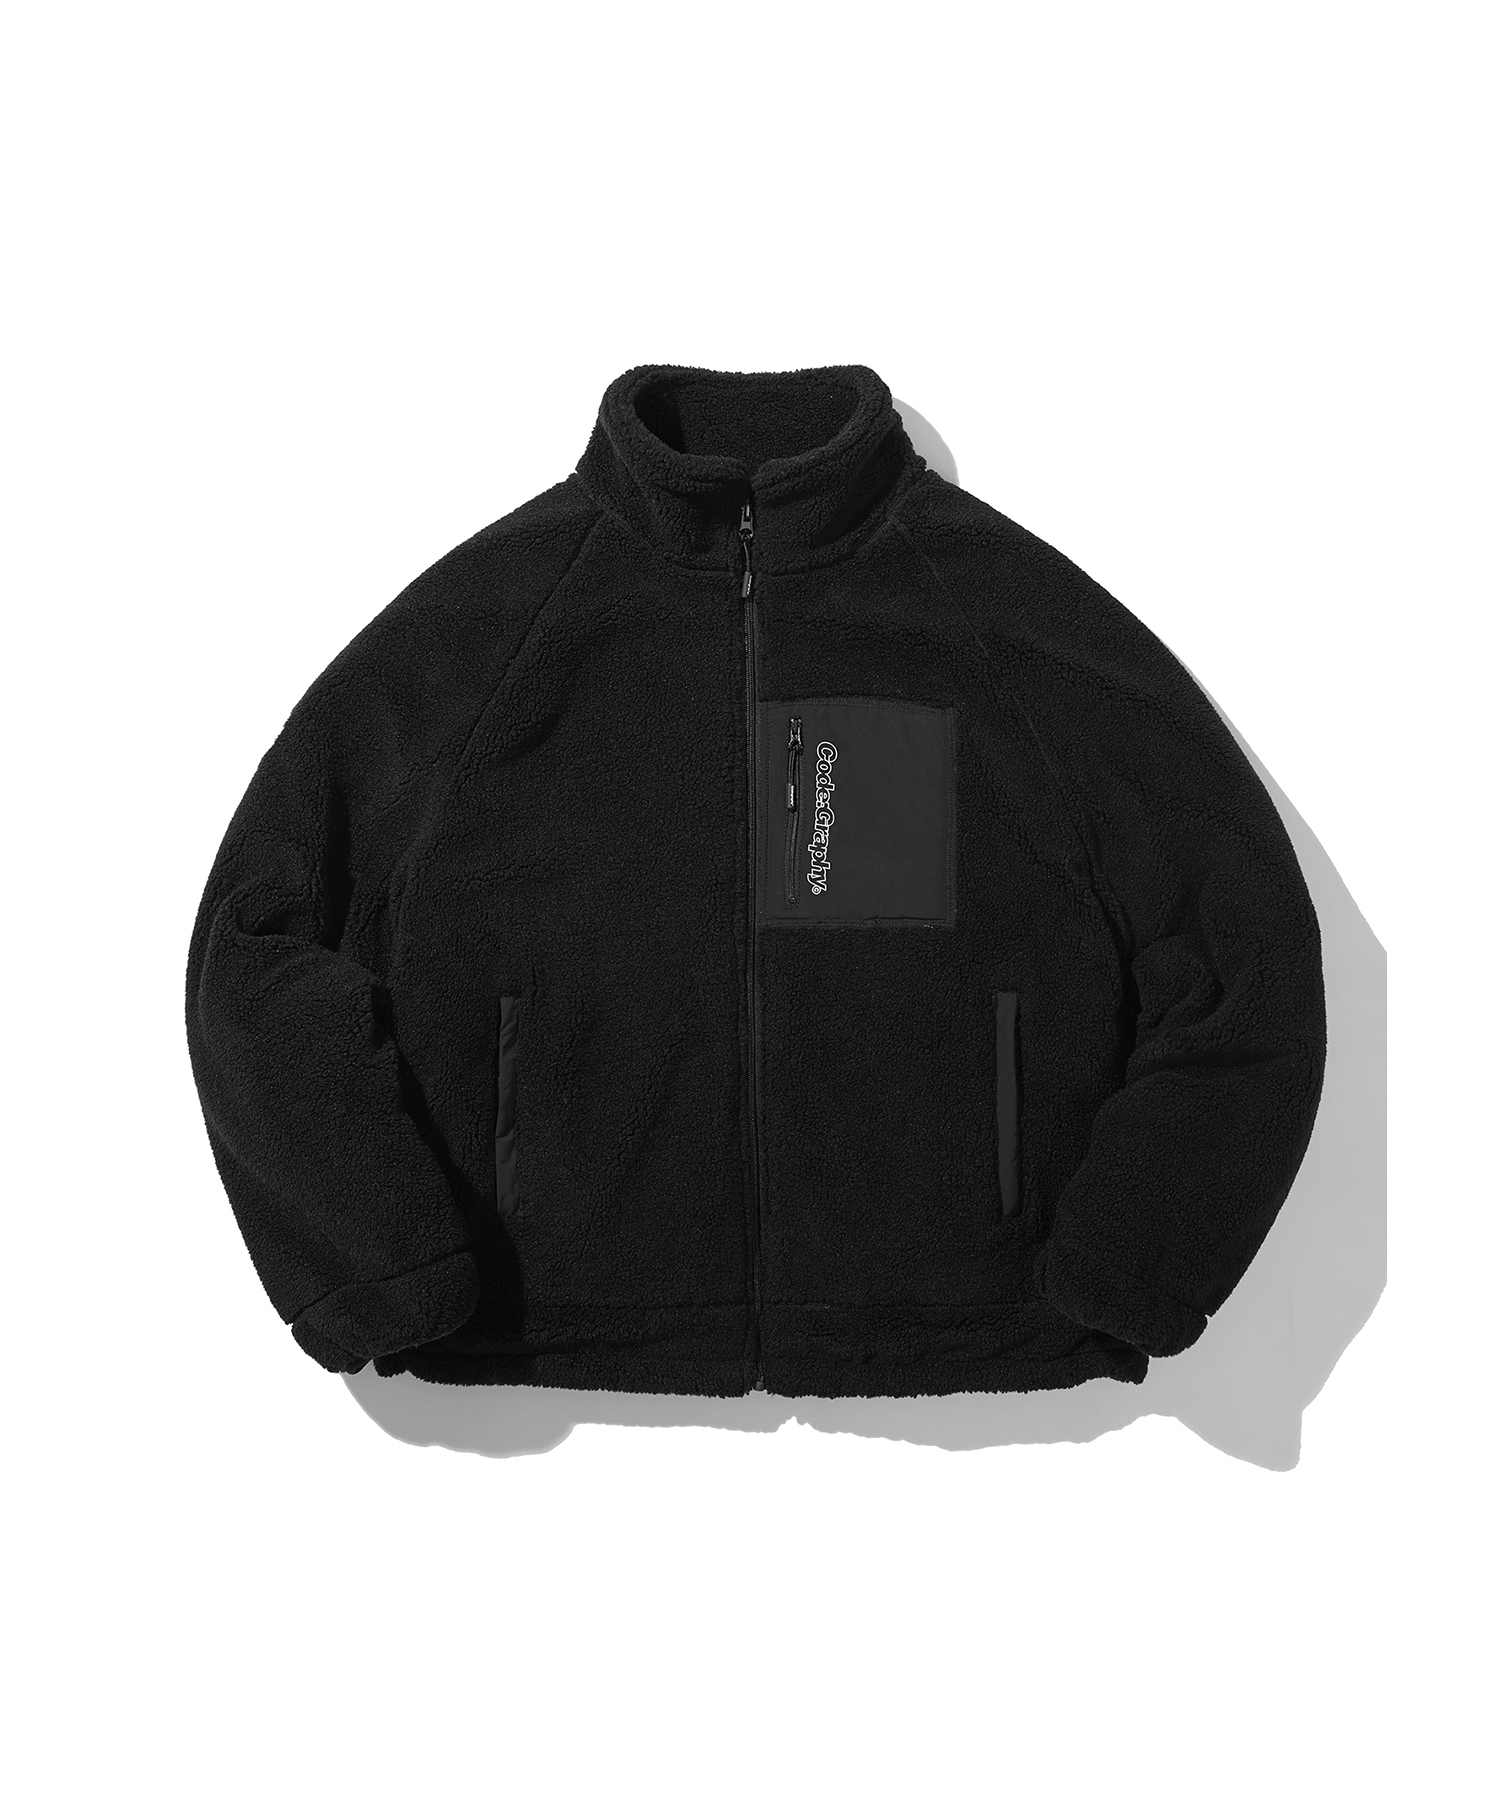 HEAVY BOA FLEECE JACKET - BK